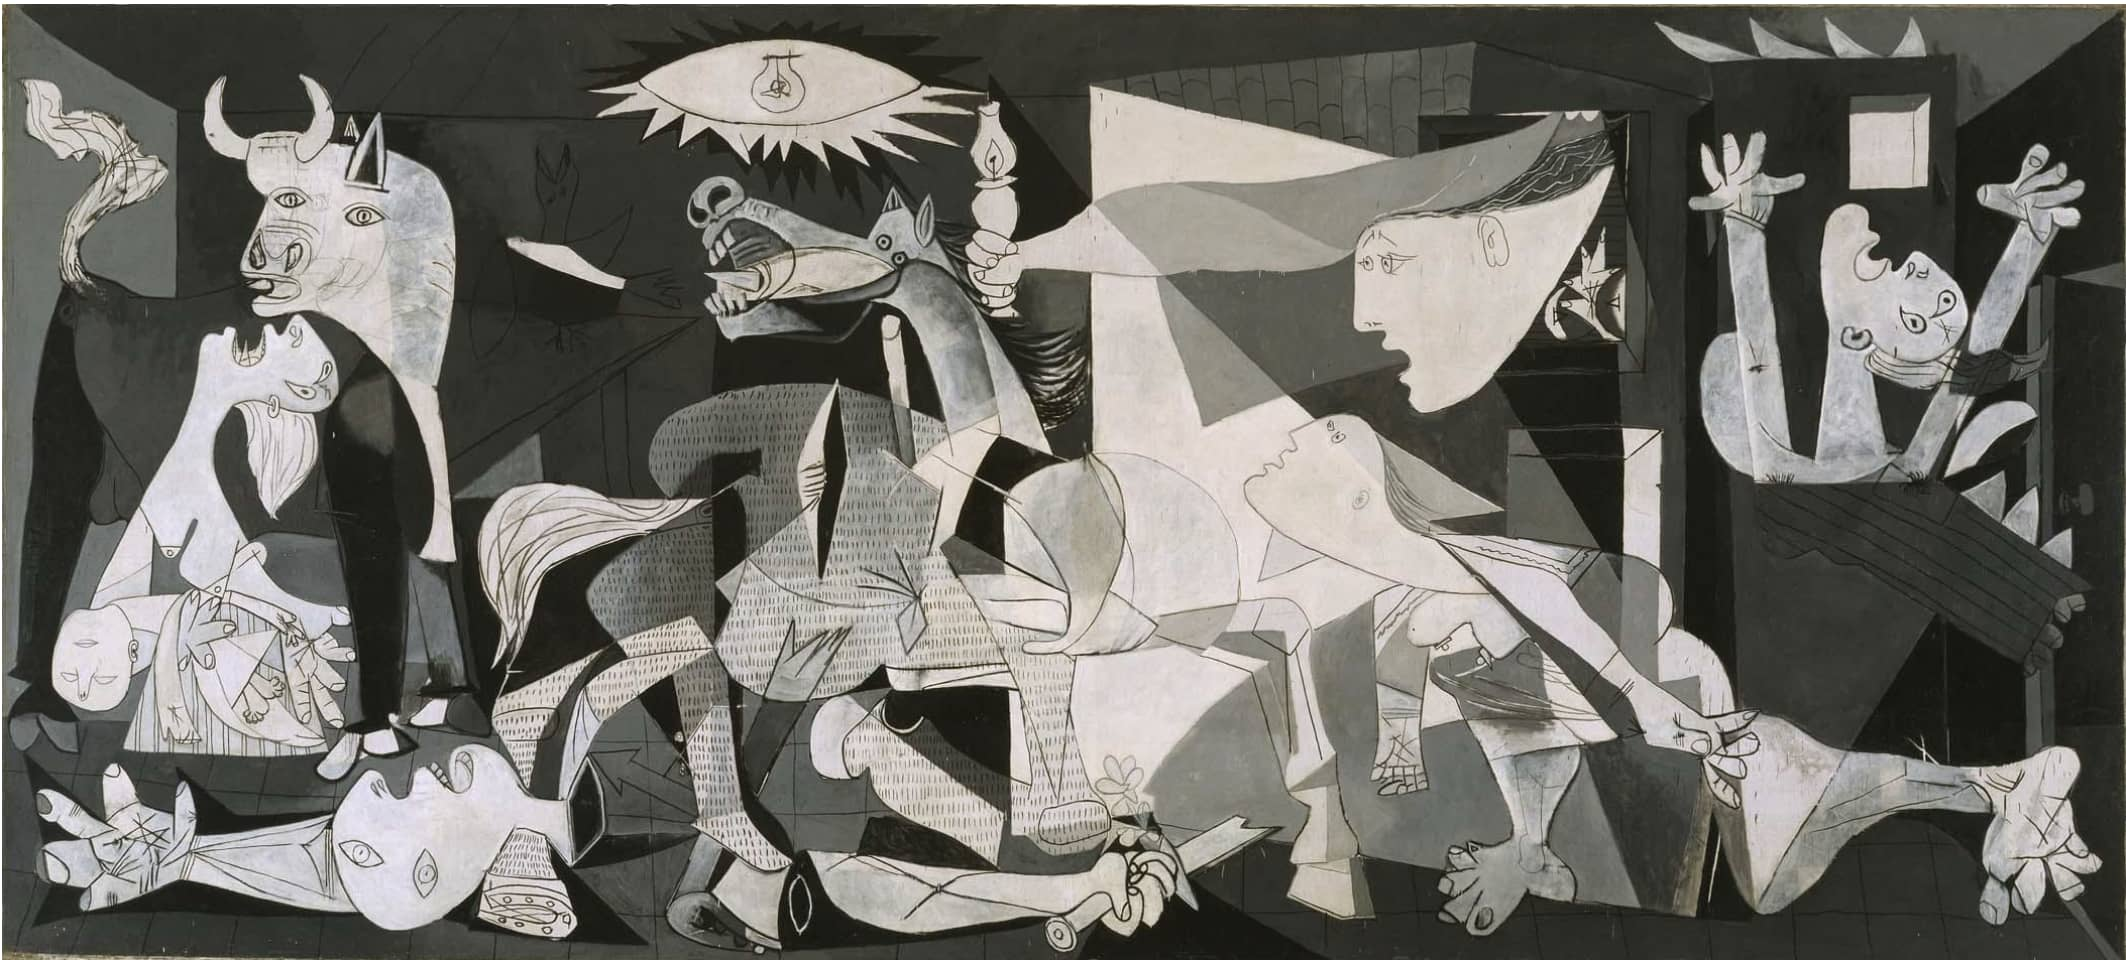 If You Like Picasso, You Will Love These Artists, We outline the modern-day artists inspired by the cubist canvases of...